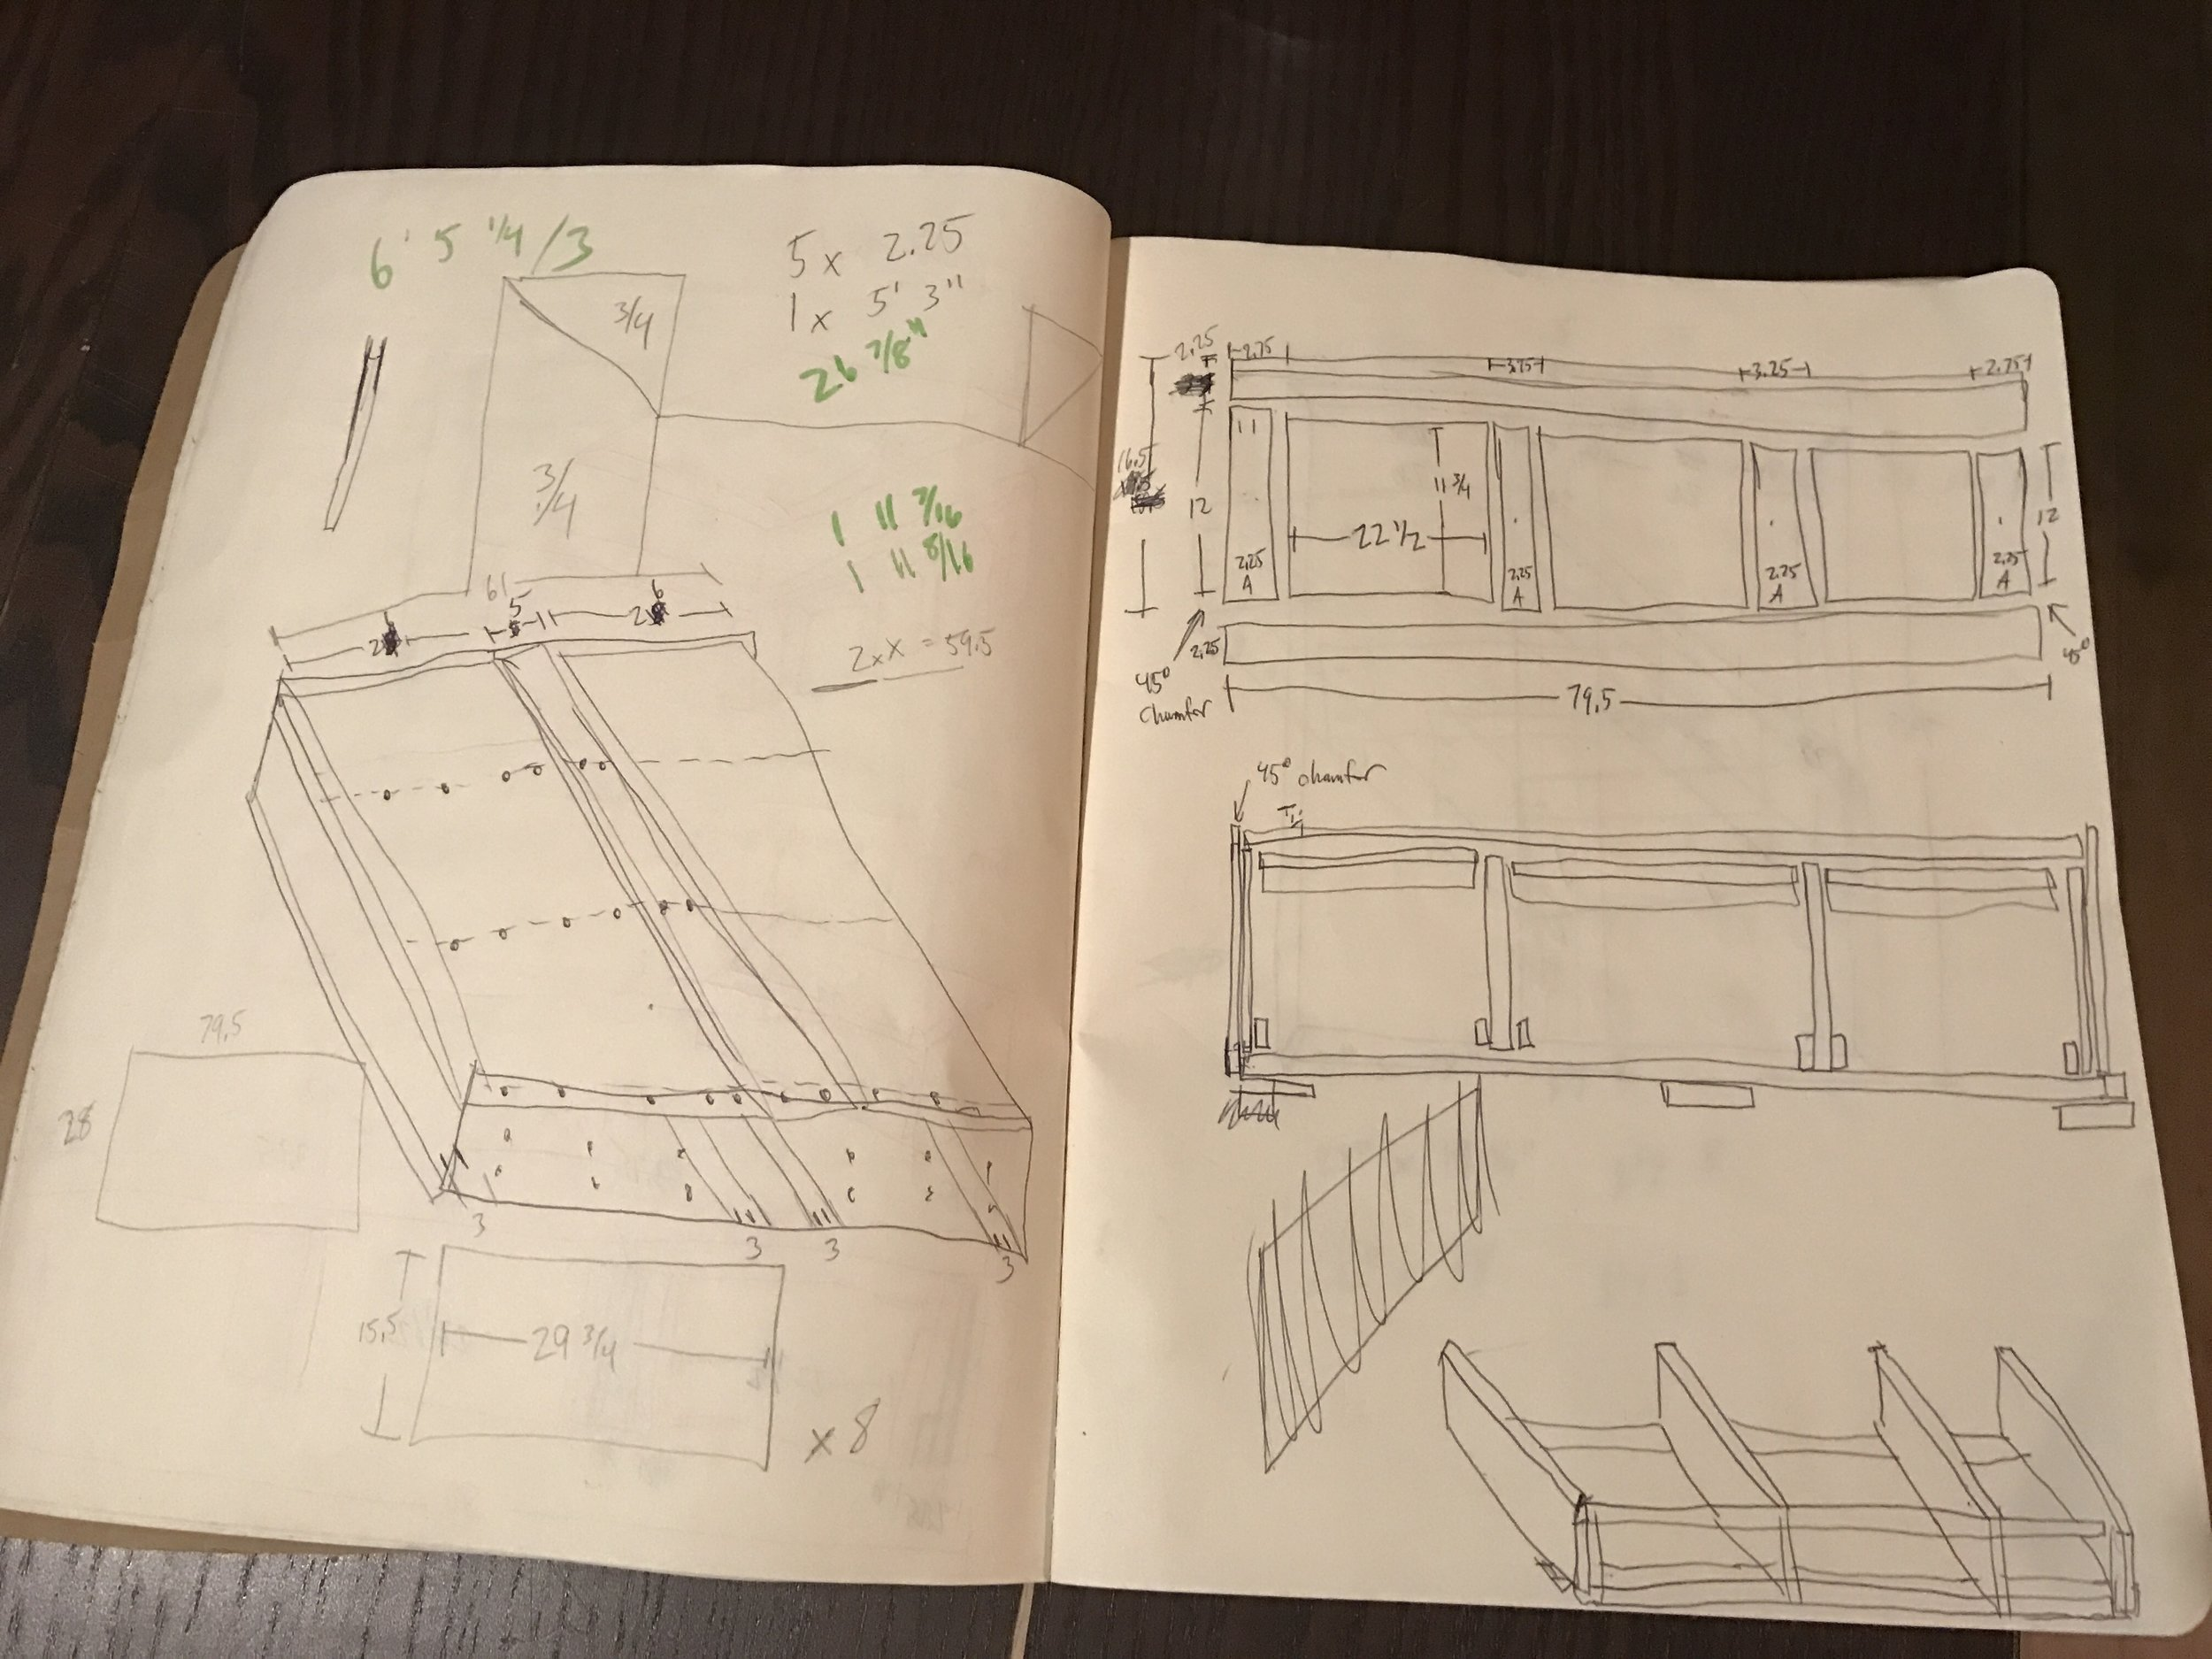 My super detailed sketched plans for my new bedframe.